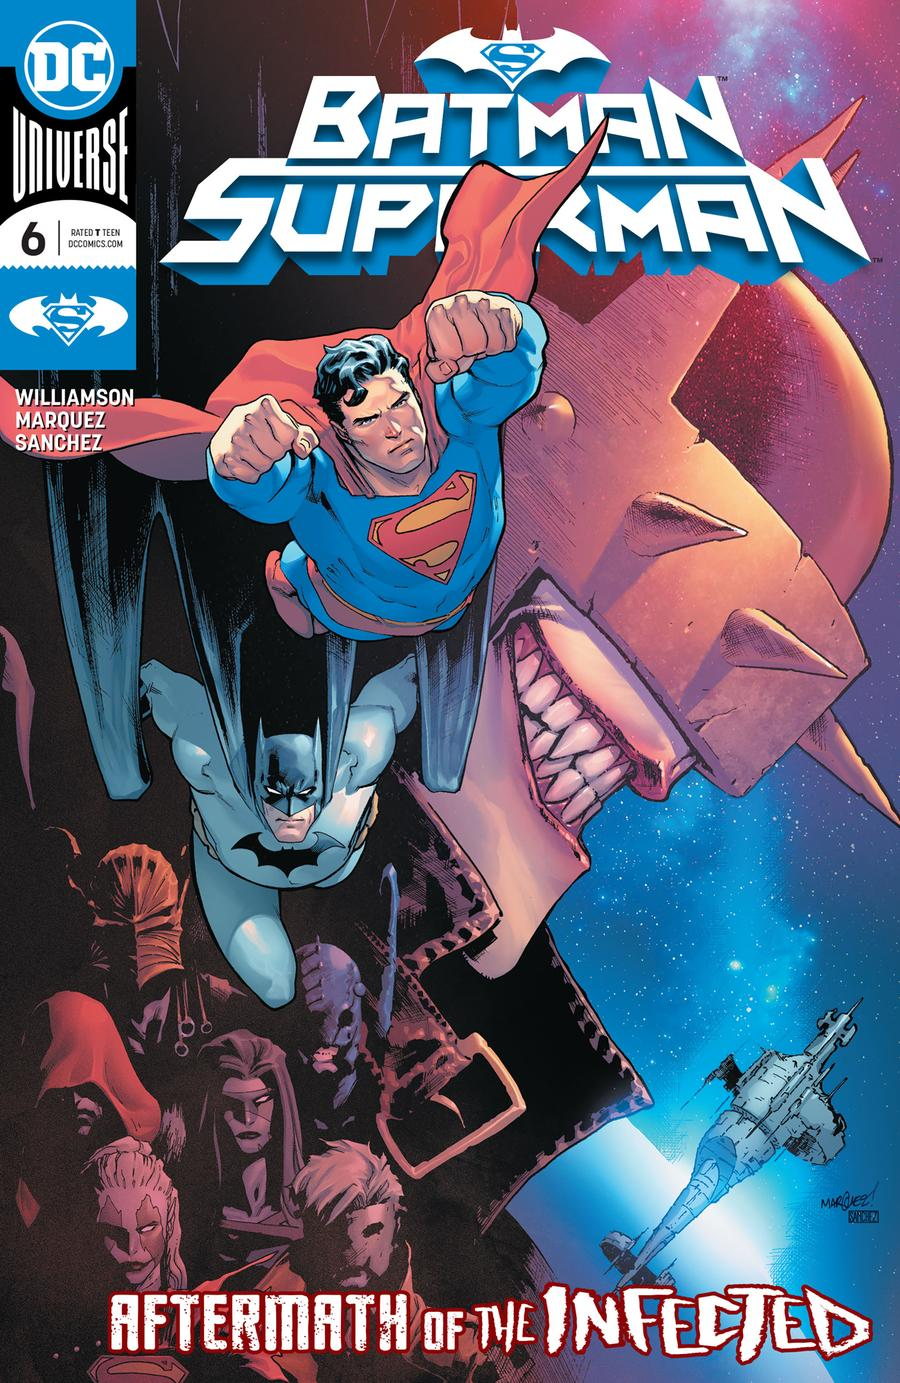 Batman Superman Vol 2 #6 Cover A Regular David Marquez Cover